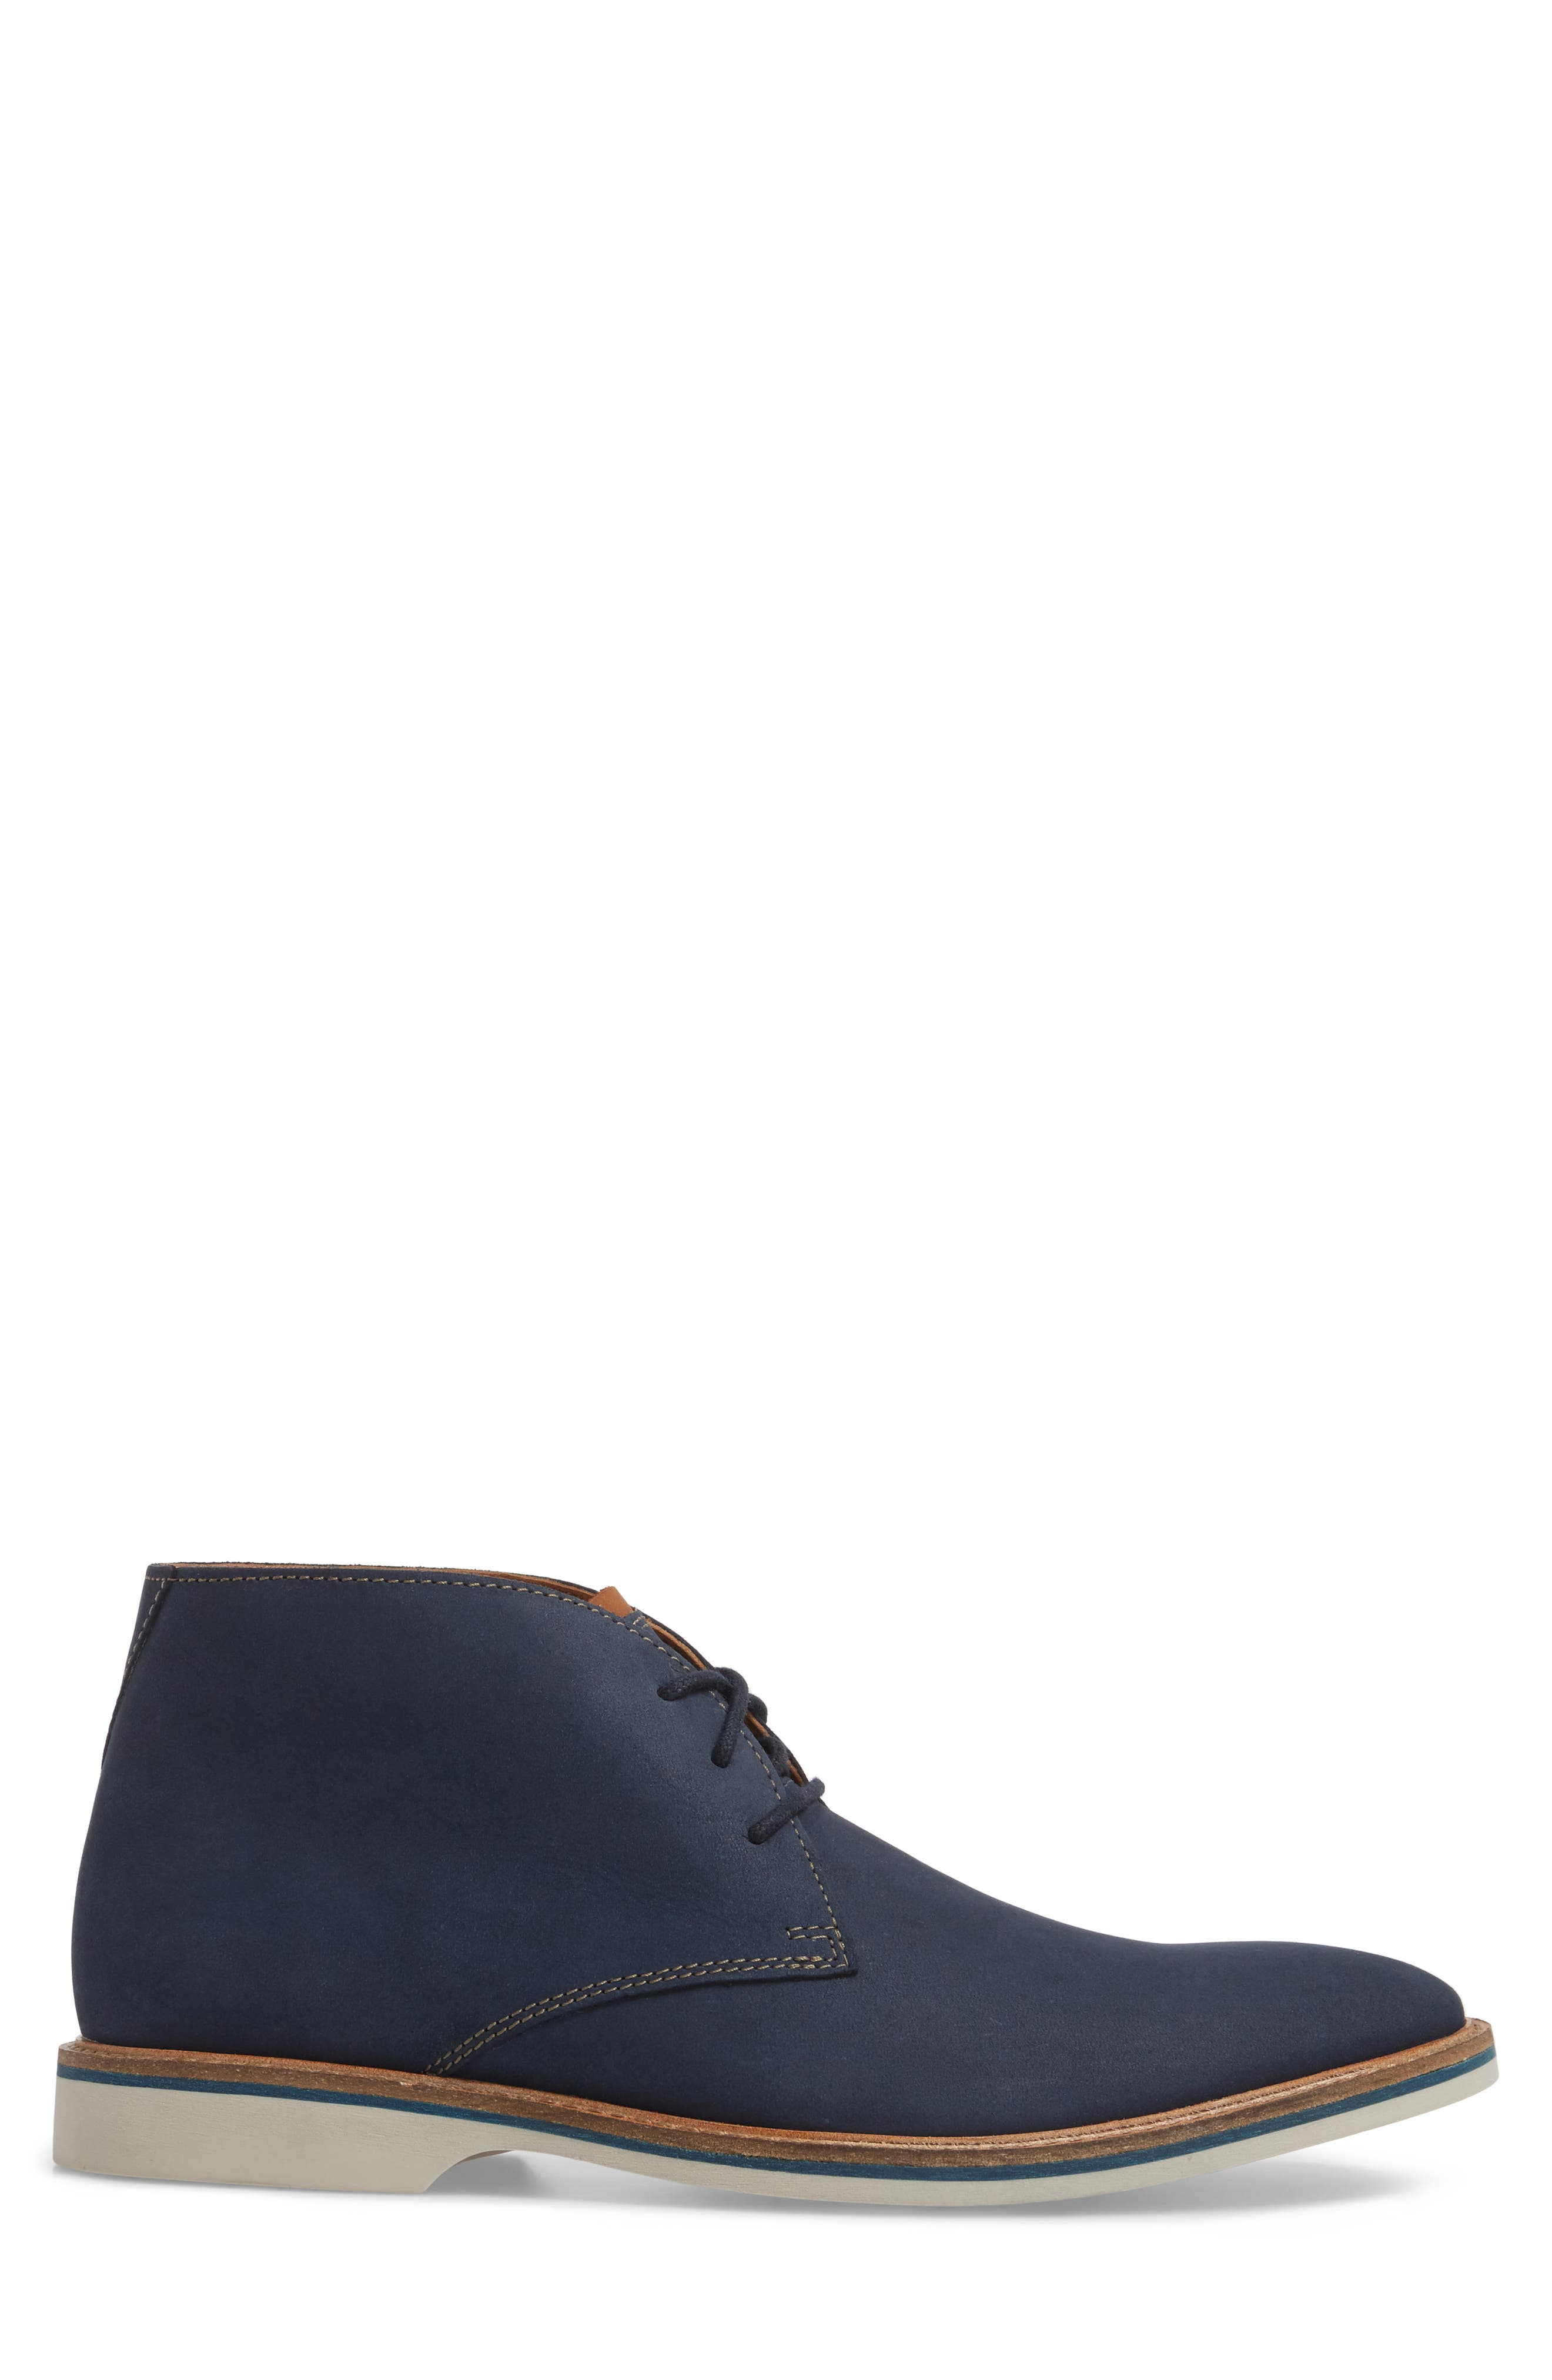 Clarks<sup>®</sup> Atticus Limit Chukka Boot,                             Alternate thumbnail 3, color,                             Navy Nubuck